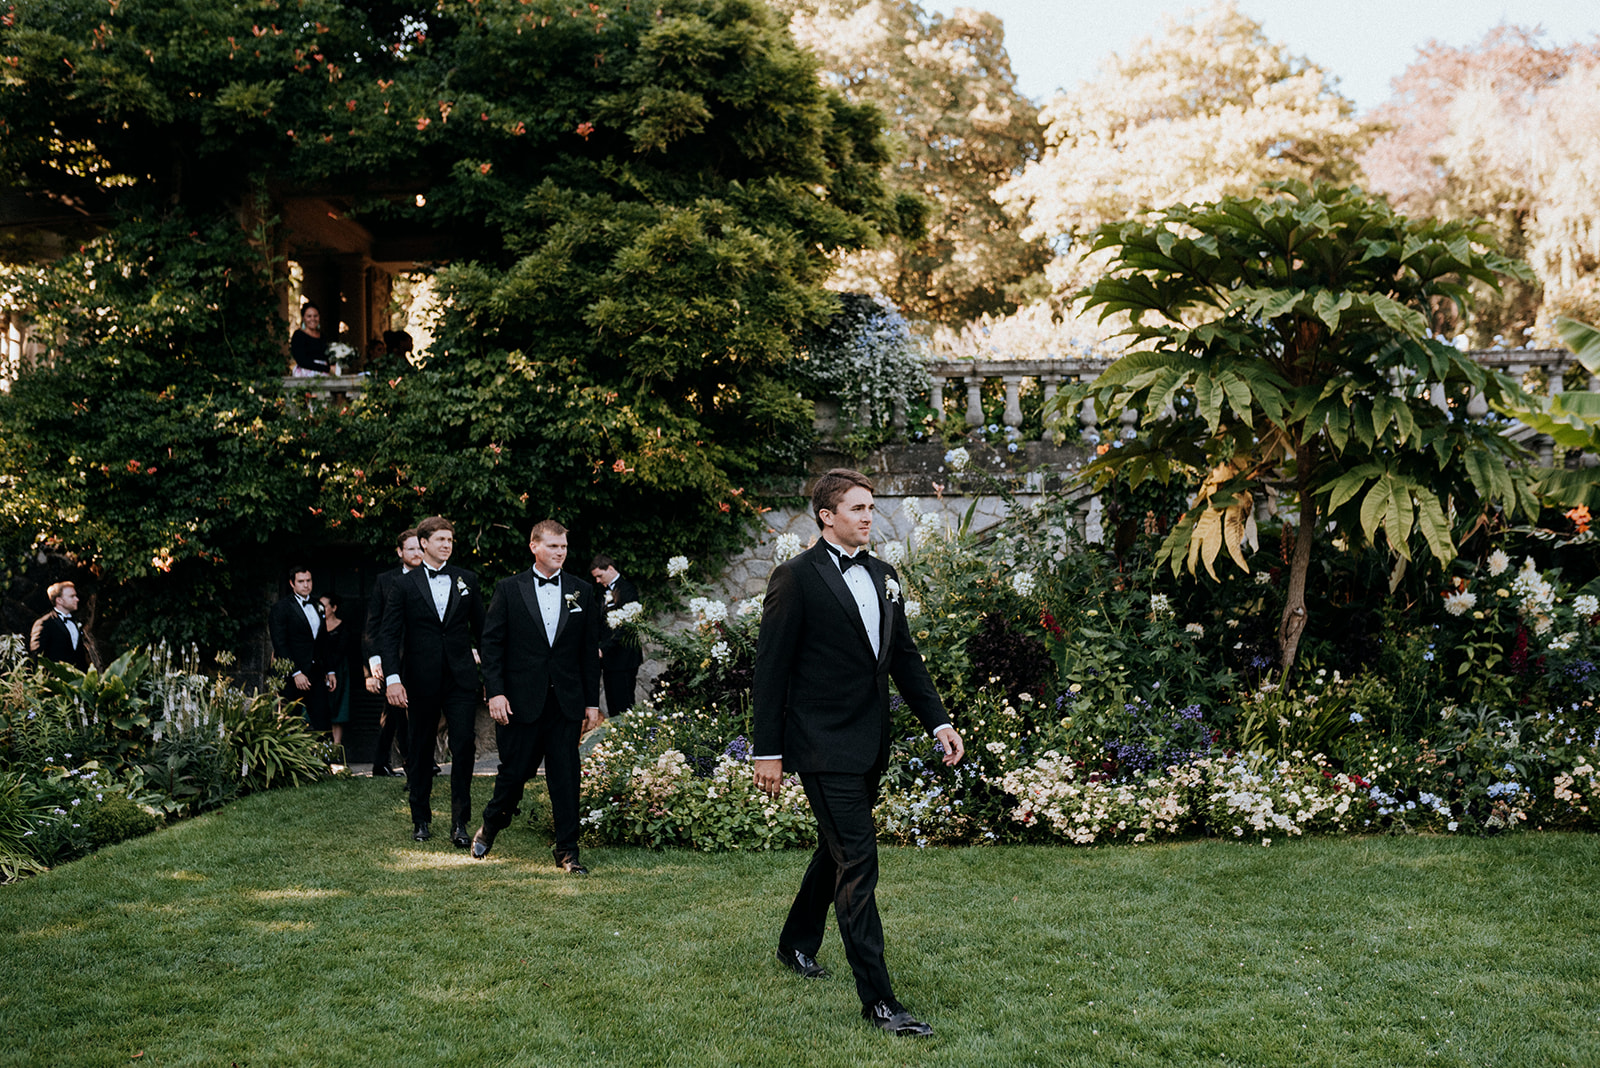 Hatley Castle Wedding - Victoria Wedding Photographer Kim Jay-25.jpg